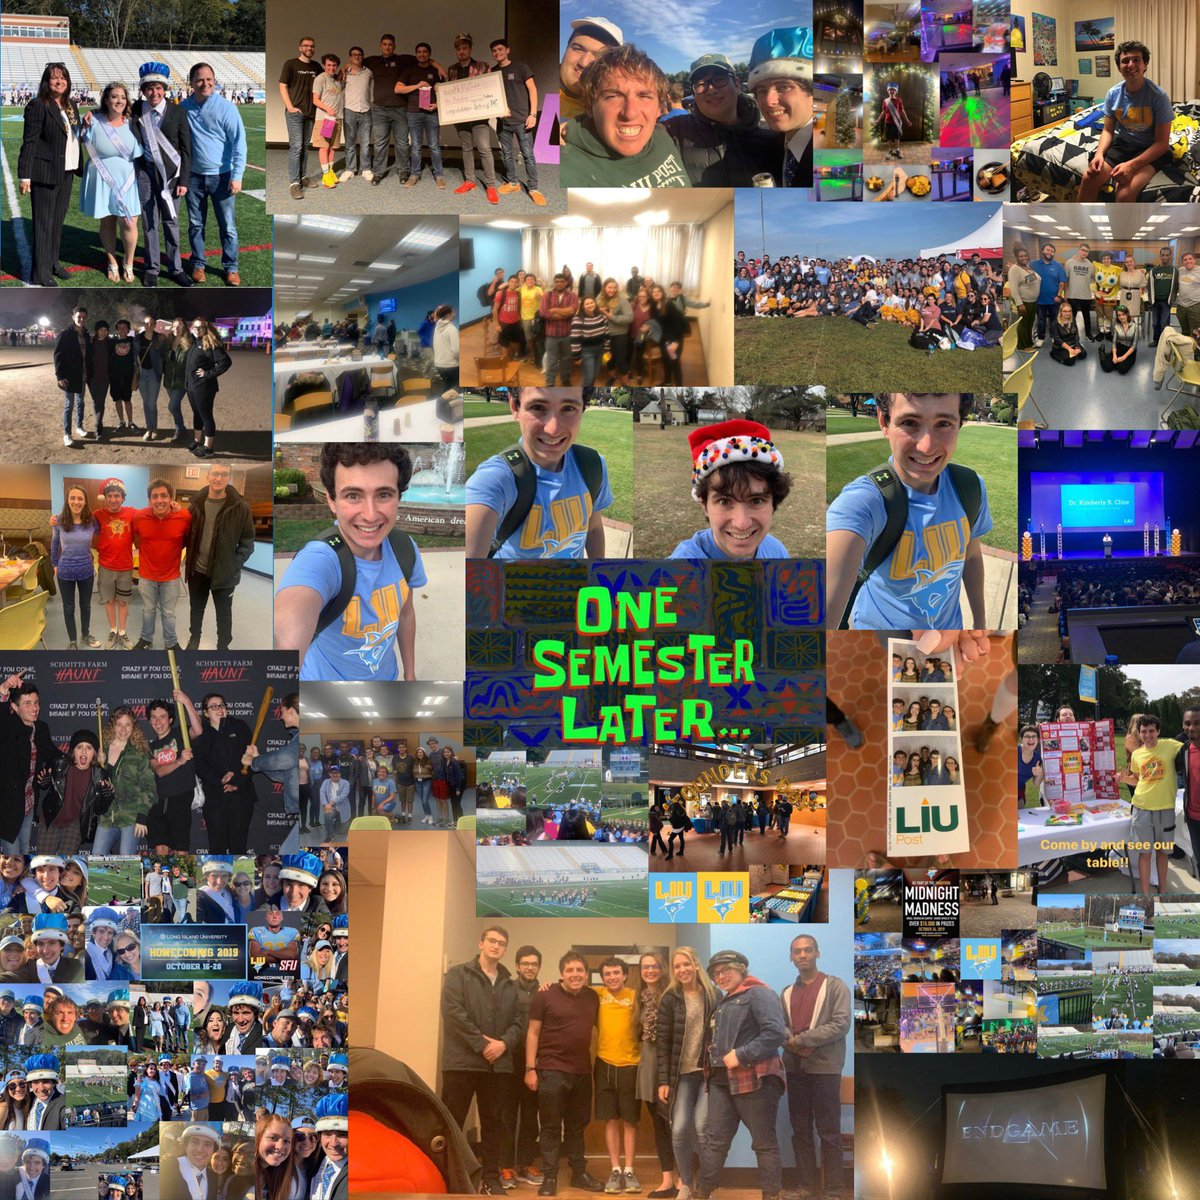 Now here's a throwback to my Fall 2019 semester at LIU Post!!!! So many amazing memories this semester!!!! Thank you all for helping to make it so awesome!!!! Love looking back at these memories!!!! 😊💙💛🦈😁☺️💛🤗 #LIUPost #Fall2019 #Fall2019Semester #LIUPostFall2019